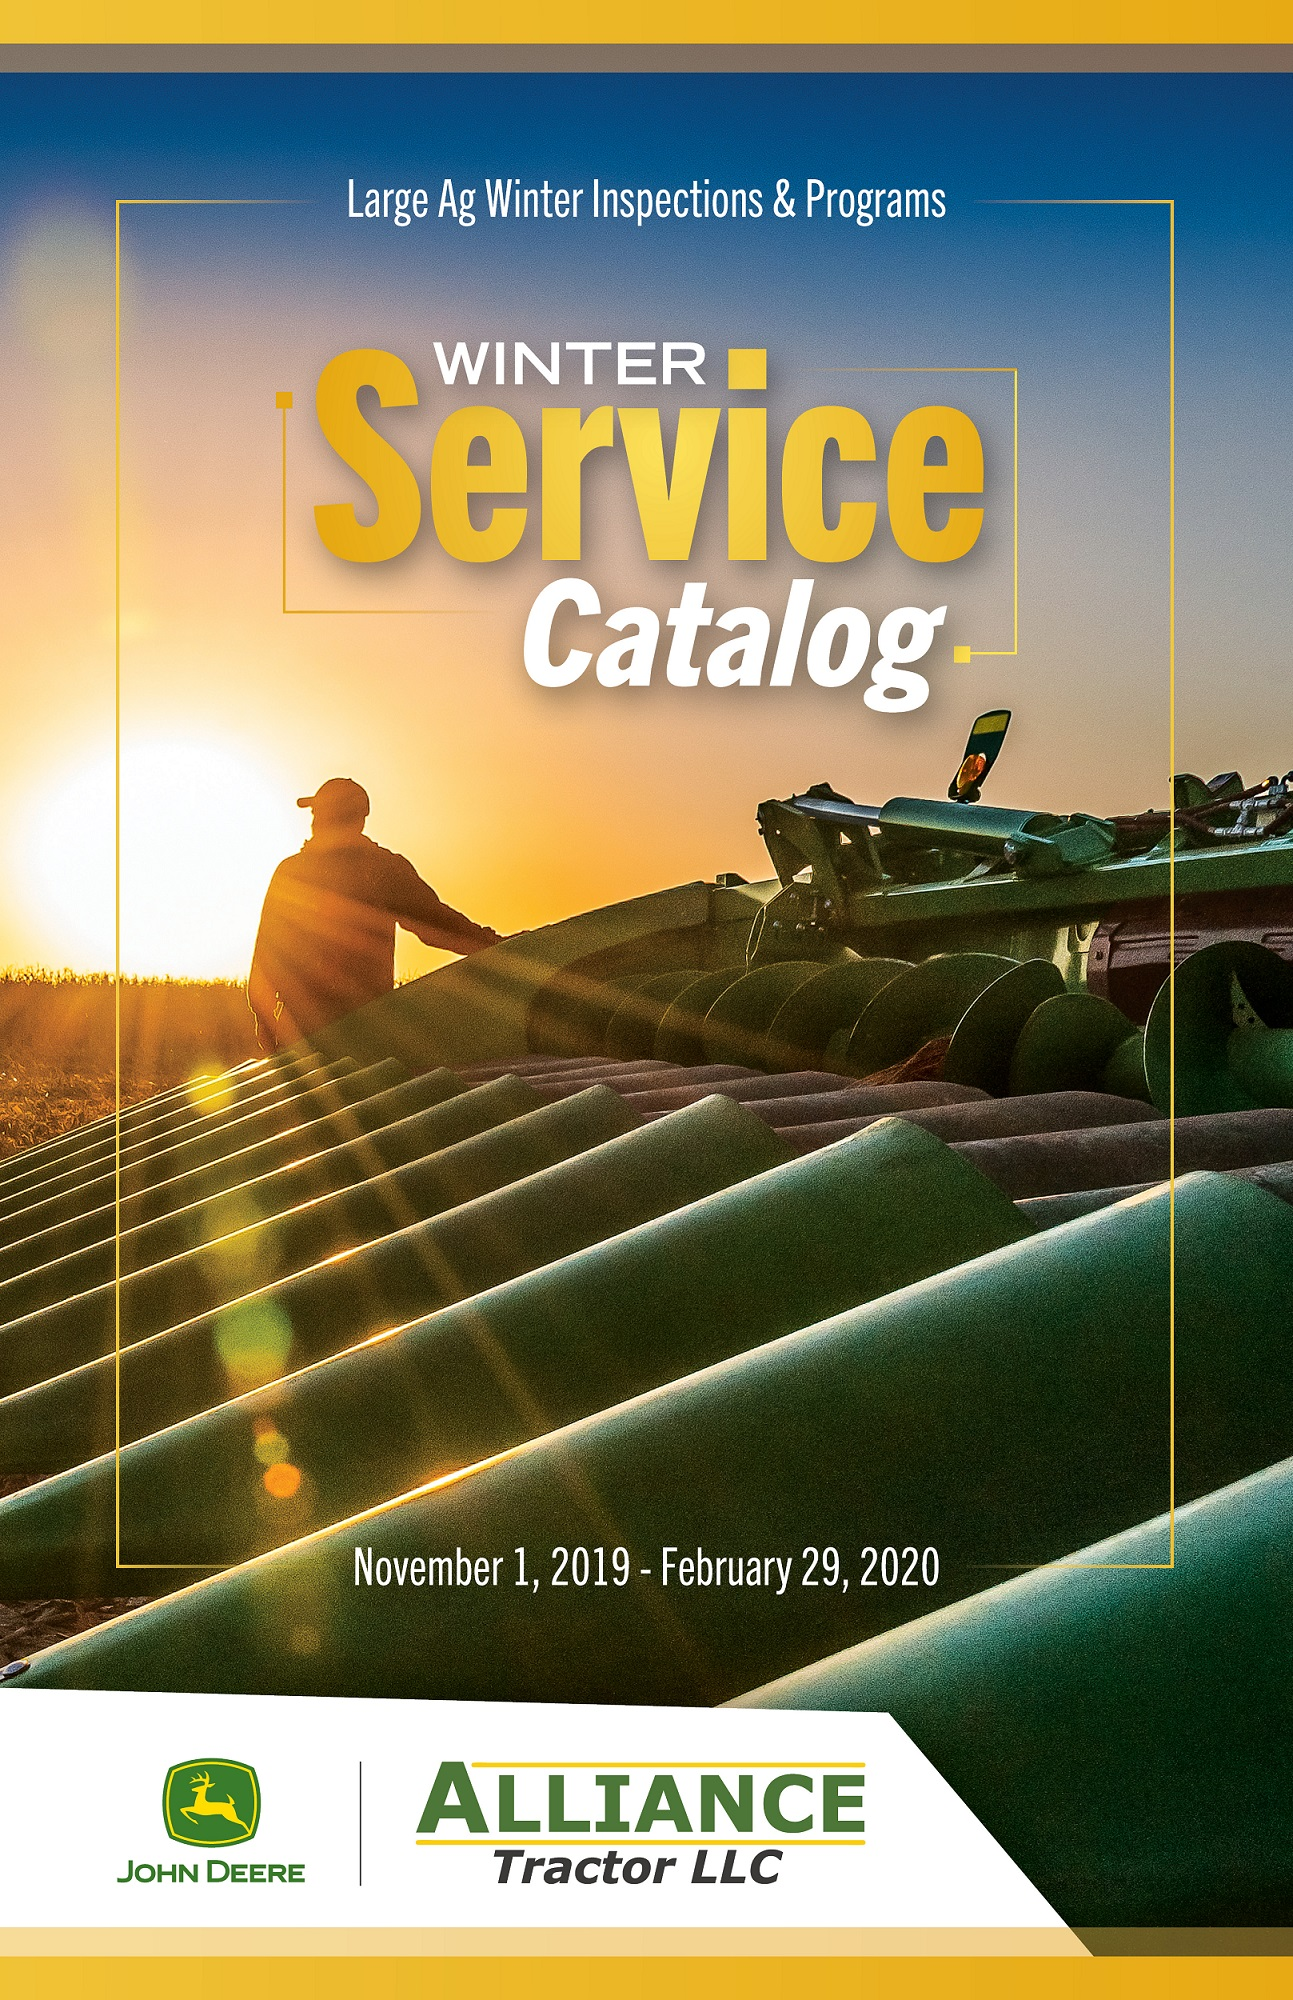 Winter Service Catalog